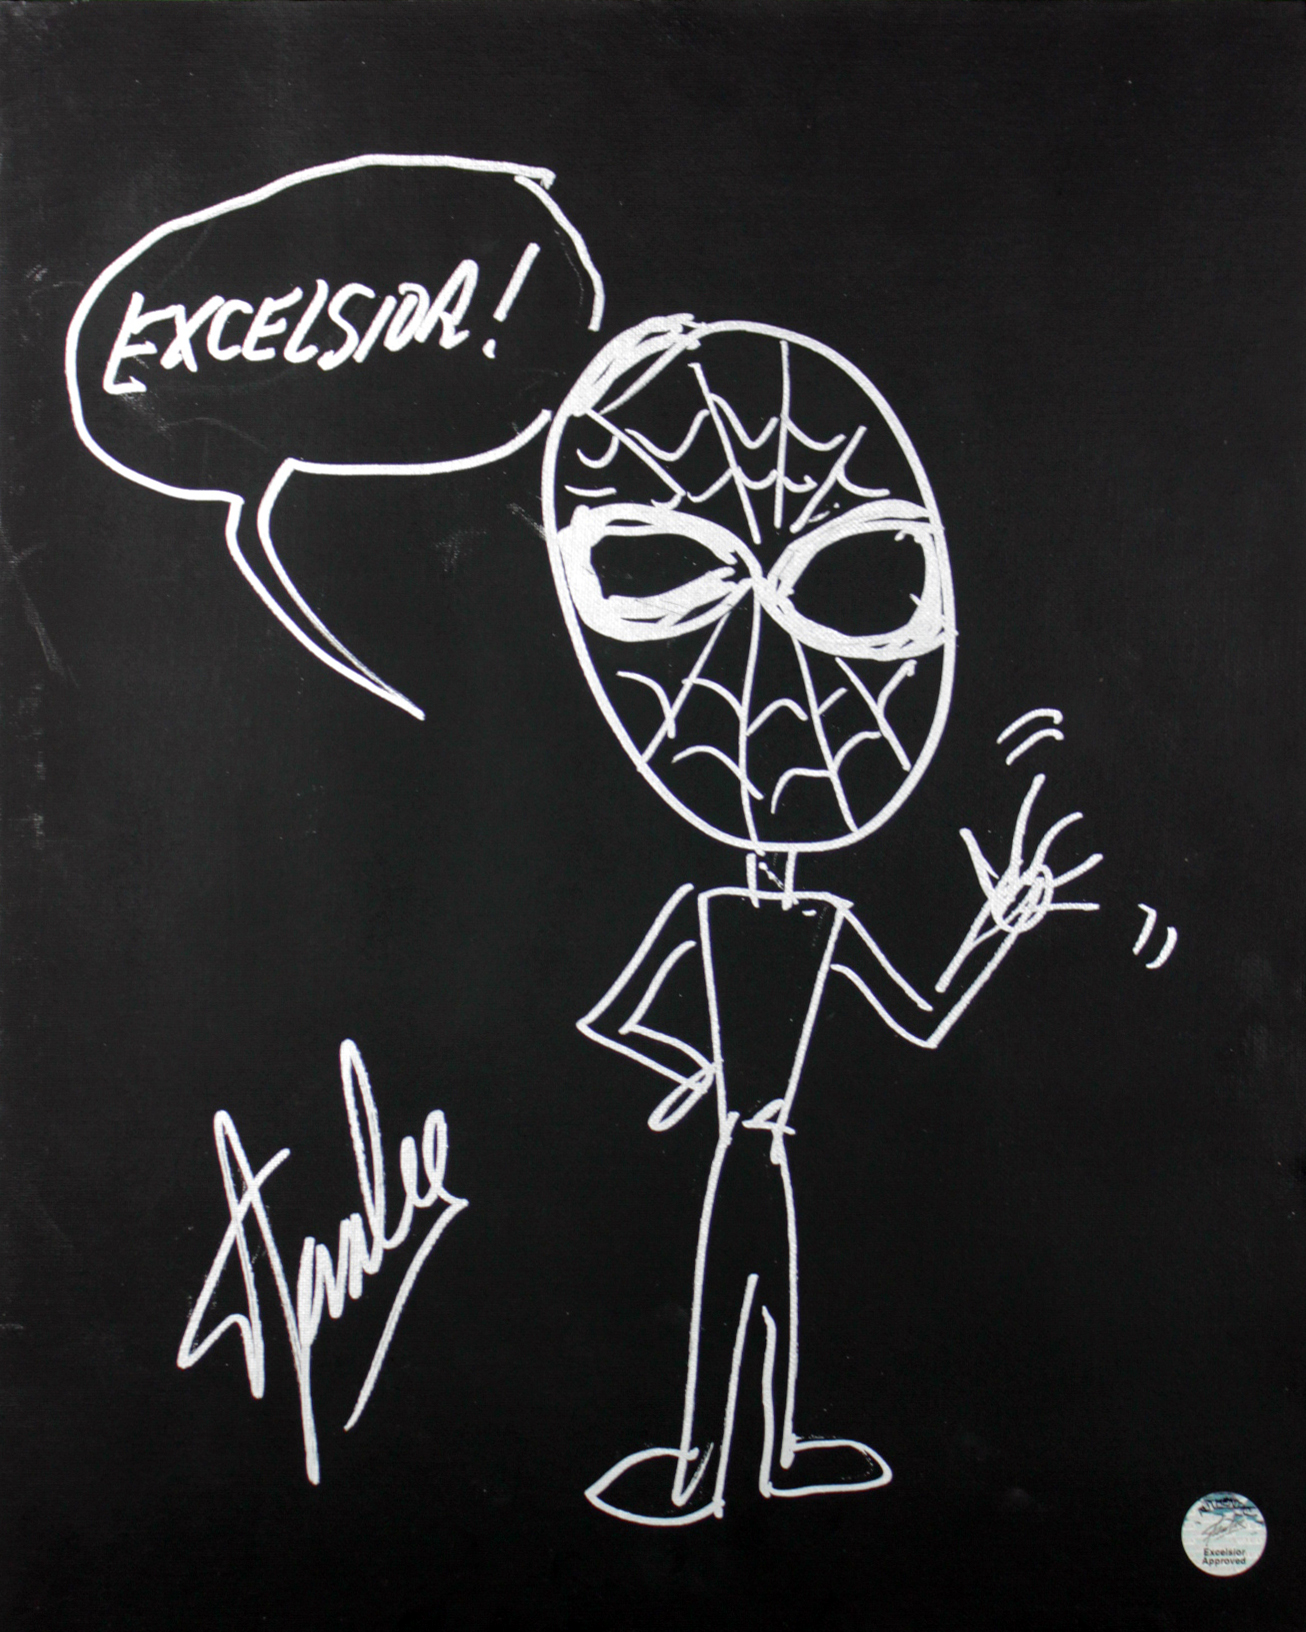 Stan Lee Authentic Signed 16x20 Canvas w/ Spider-man Sketch PSA/DNA #W00378